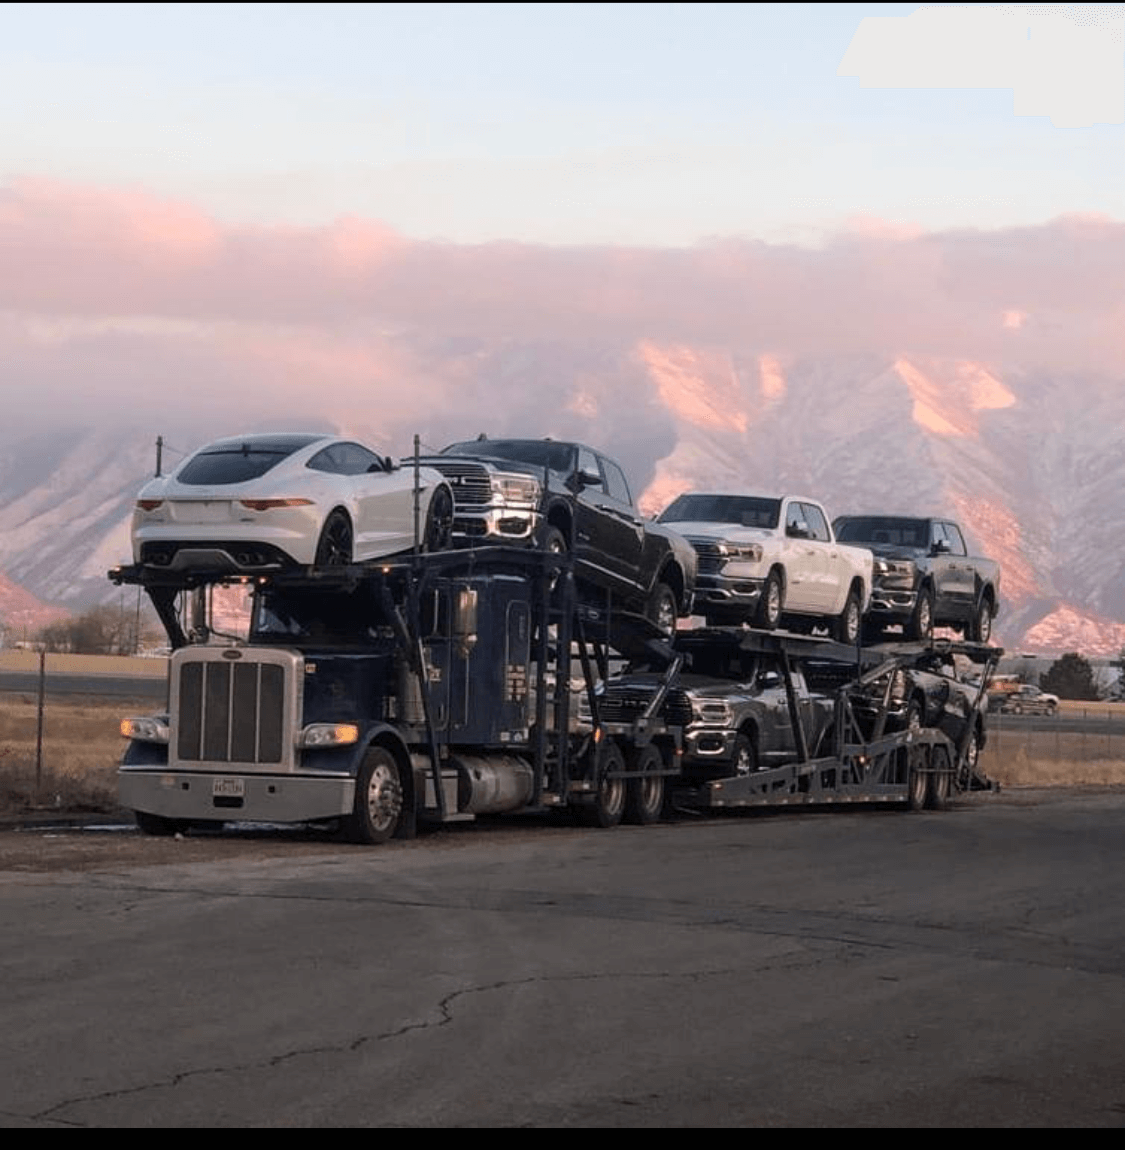 A couple of cars being transported across the country.